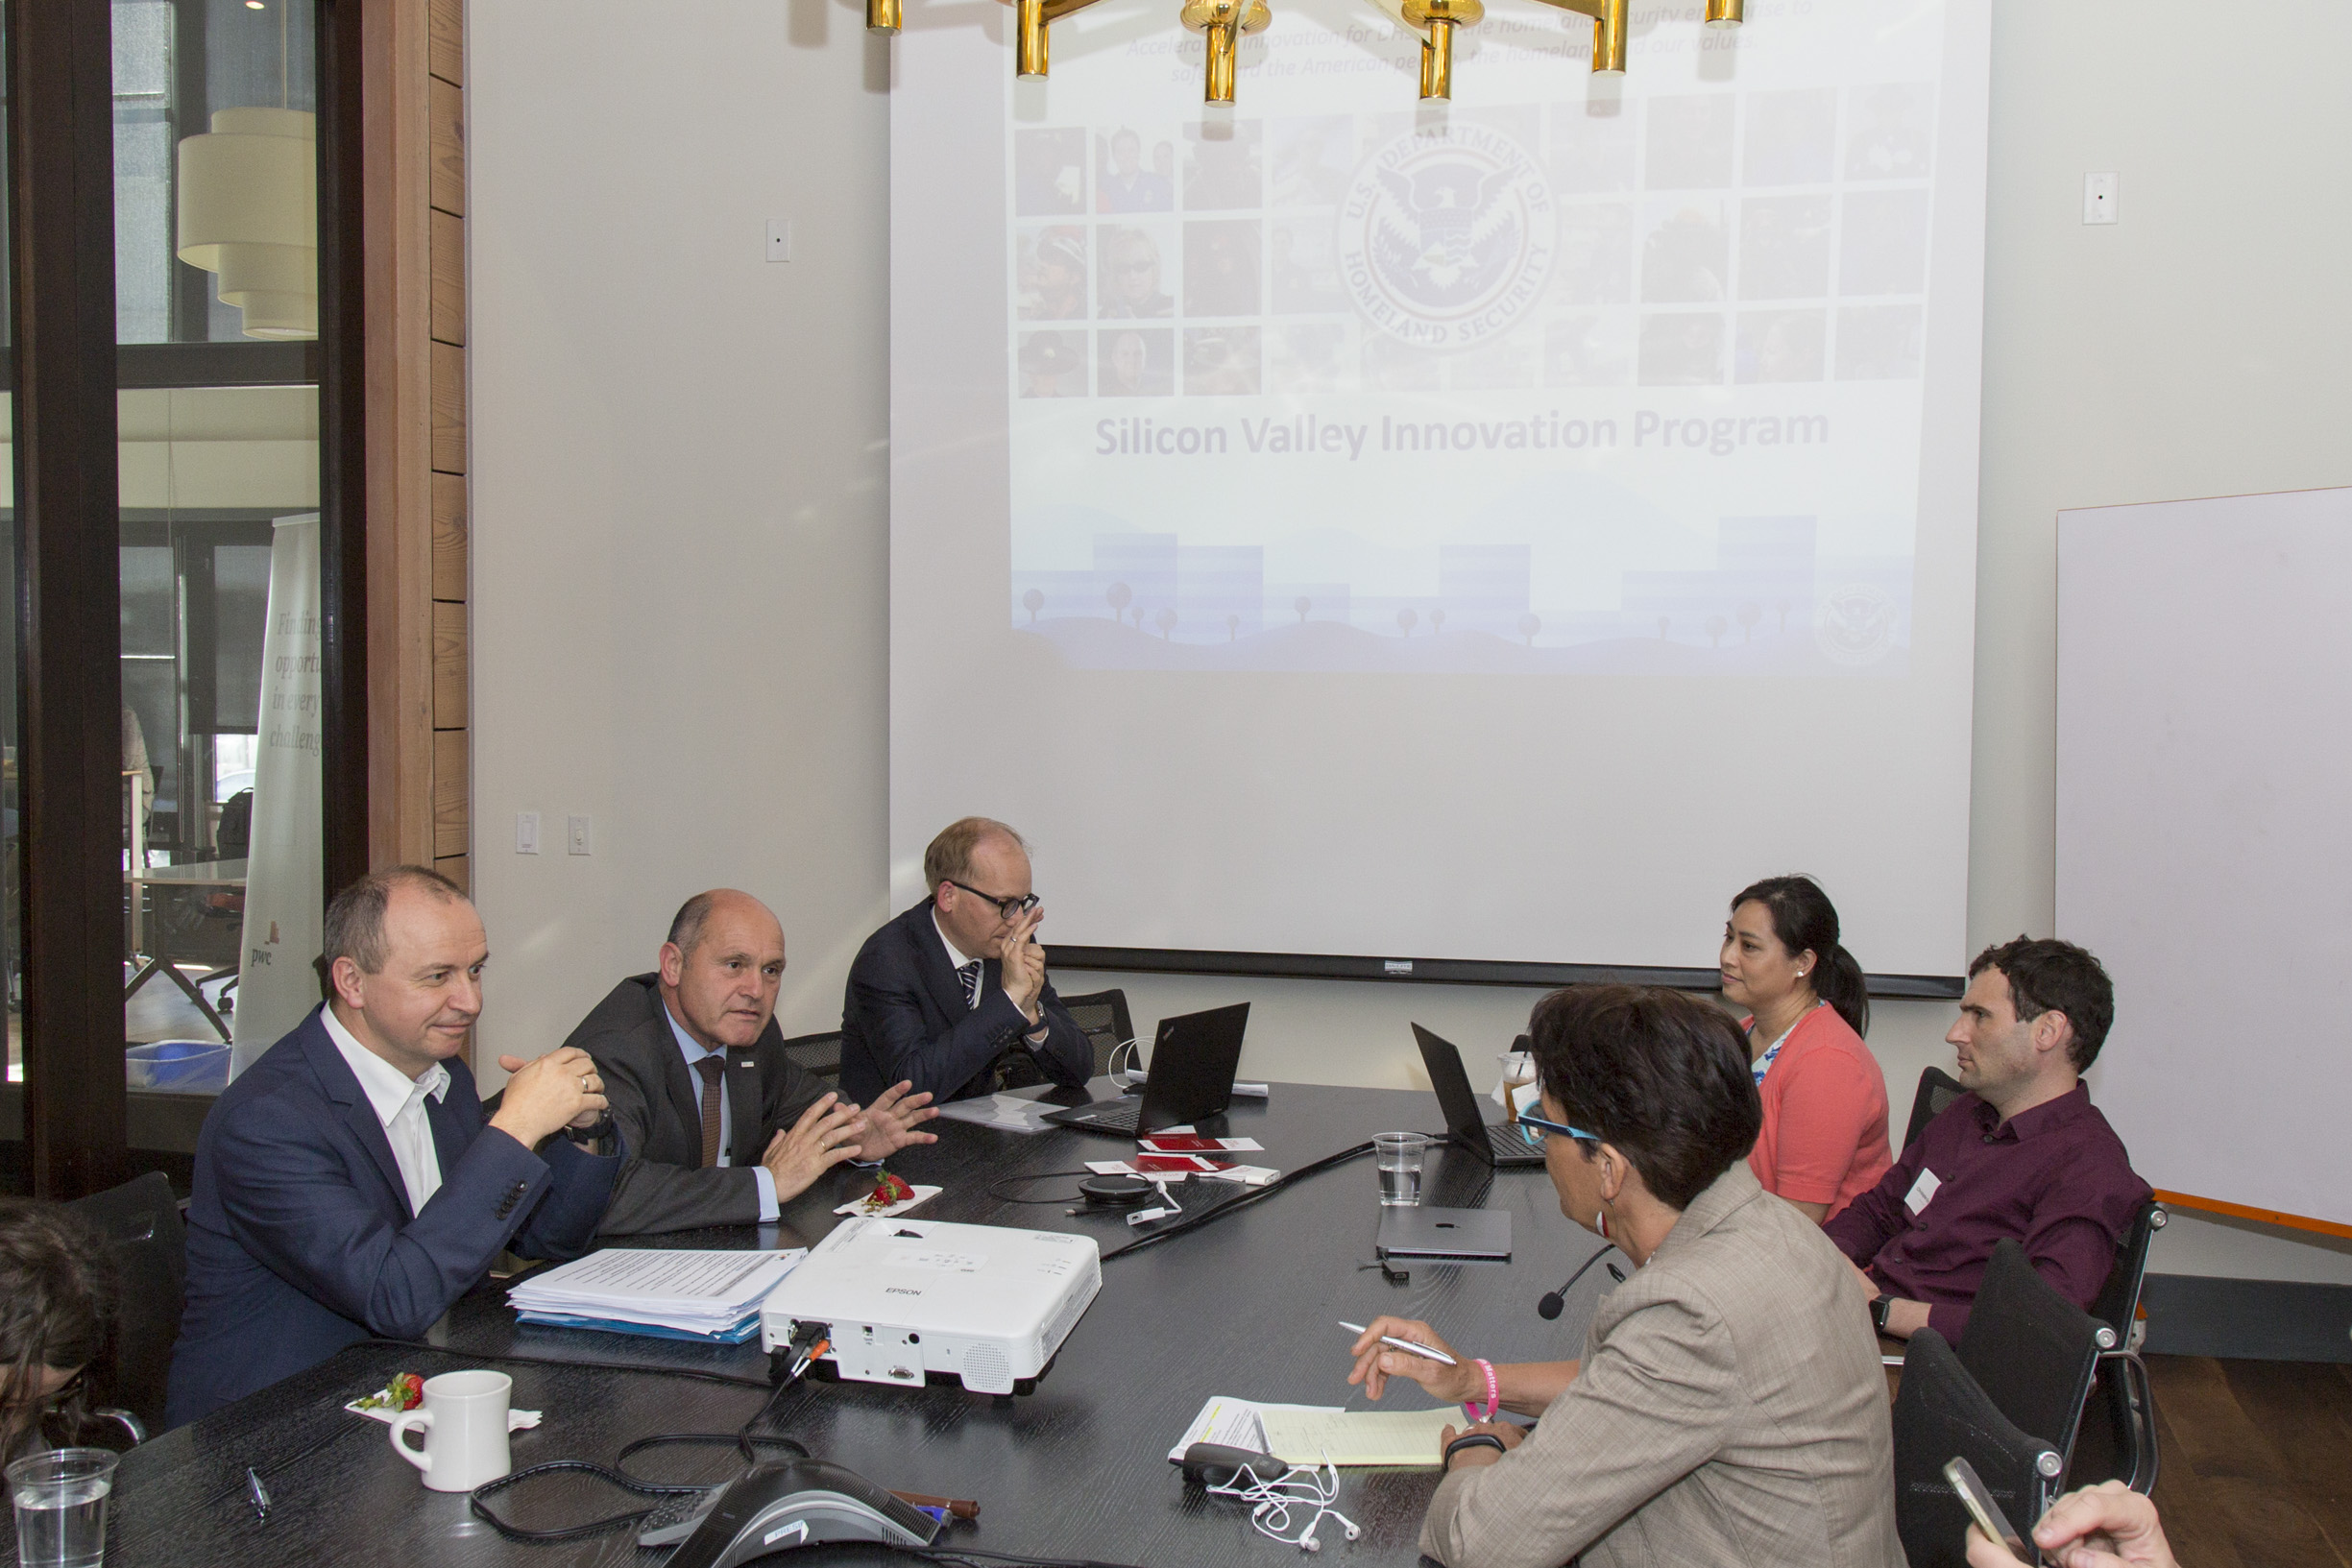 """Federal Minister Sobotka and delegation at a meeting in Silicon Valley.         96              Normal   0           false   false   false     EN-US   X-NONE   X-NONE                                                                                                                                                                                                                                                                                                                                                                                                                                                                                                                                                                                                                                                                                                                                                                                                                                                                                     /* Style Definitions */ table.MsoNormalTable {mso-style-name:""""Table Normal""""; mso-tstyle-rowband-size:0; mso-tstyle-colband-size:0; mso-style-noshow:yes; mso-style-priority:99; mso-style-parent:""""""""; mso-padding-alt:0in 5.4pt 0in 5.4pt; mso-para-margin:0in; mso-para-margin-bottom:.0001pt; mso-pagination:widow-orphan; font-size:12.0pt; font-family:Calibri; mso-ascii-font-family:Calibri; mso-ascii-theme-font:minor-latin; mso-hansi-font-family:Calibri; mso-hansi-theme-font:minor-latin;}      Photo: BMI/ Jürgen Makowecz"""